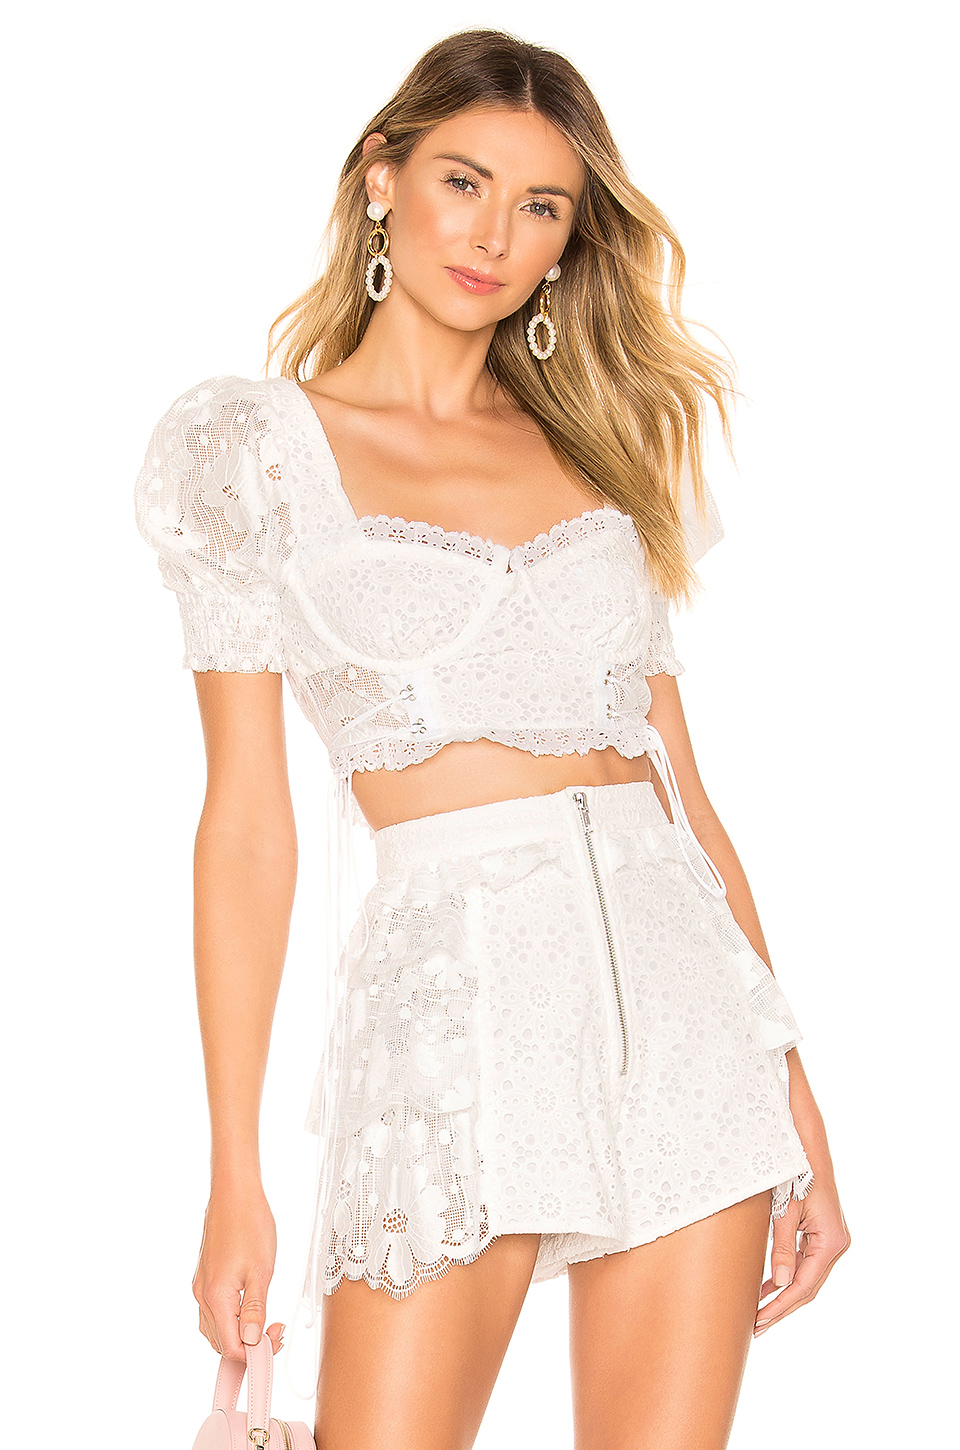 175c12a382a Buy Original For Love   Lemons Indio Lace Crop Top at Indonesia ...